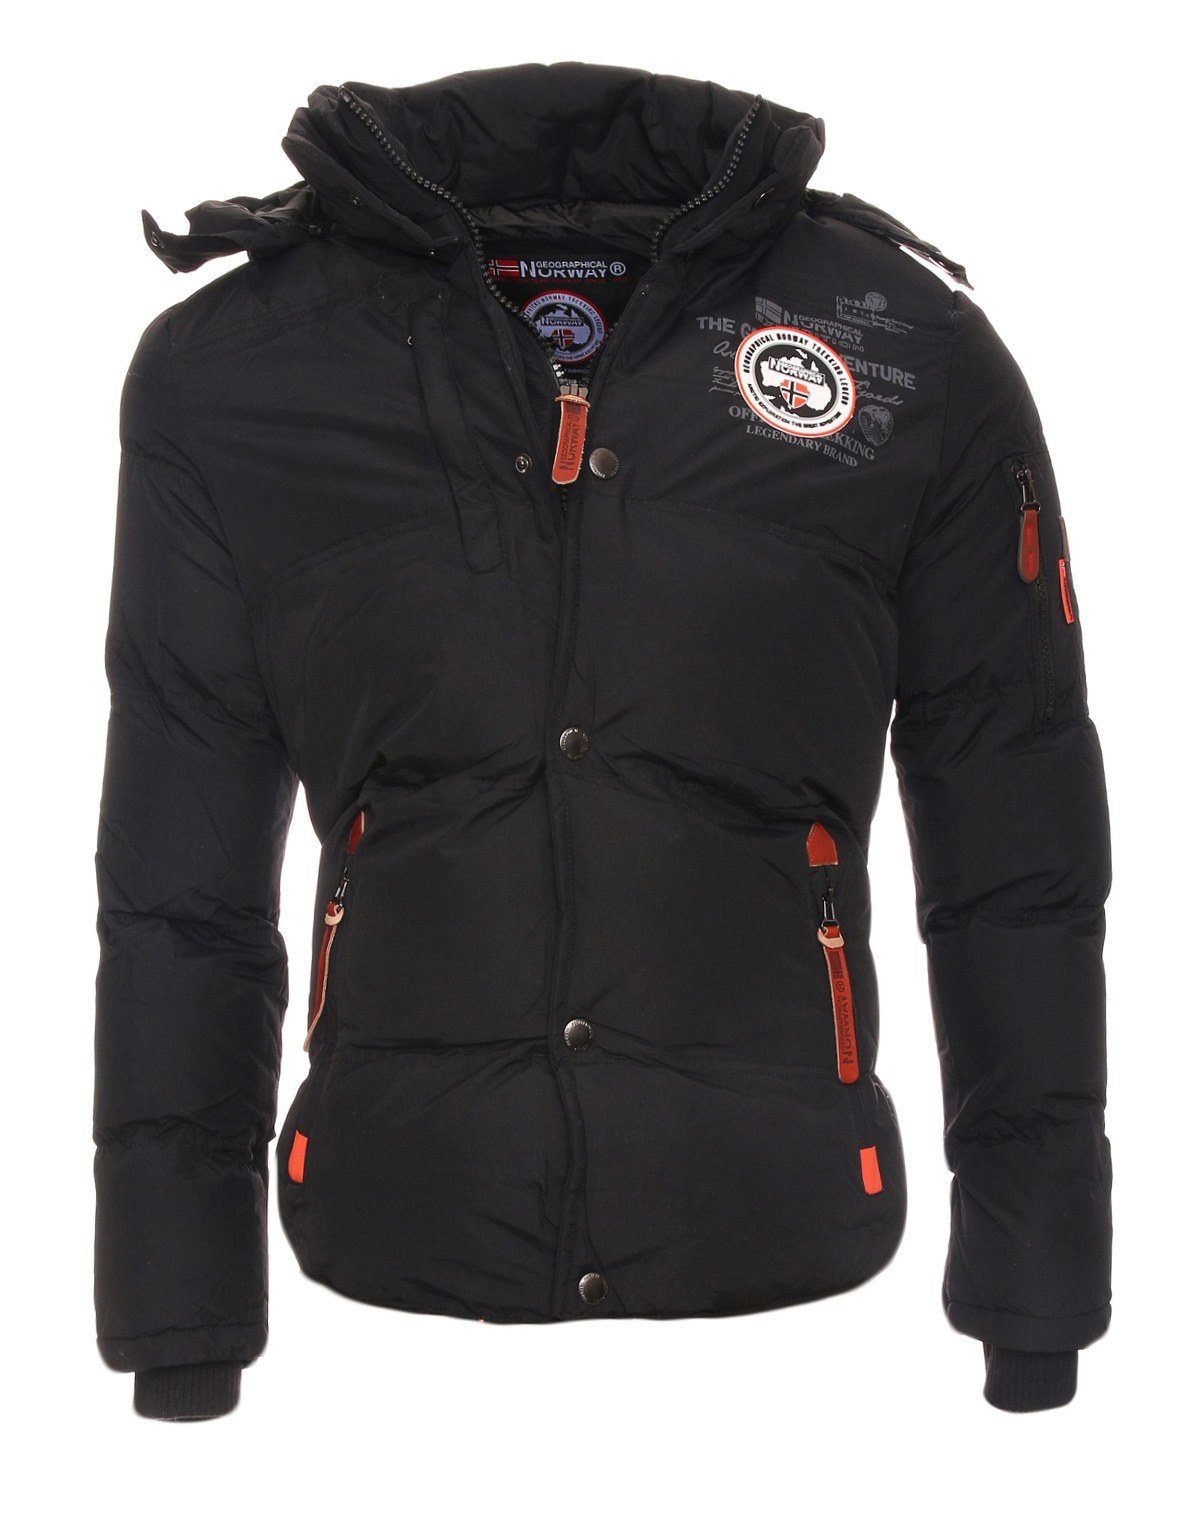 geographical norway herren winter bomber jacke venise warme jacke parka ebay. Black Bedroom Furniture Sets. Home Design Ideas